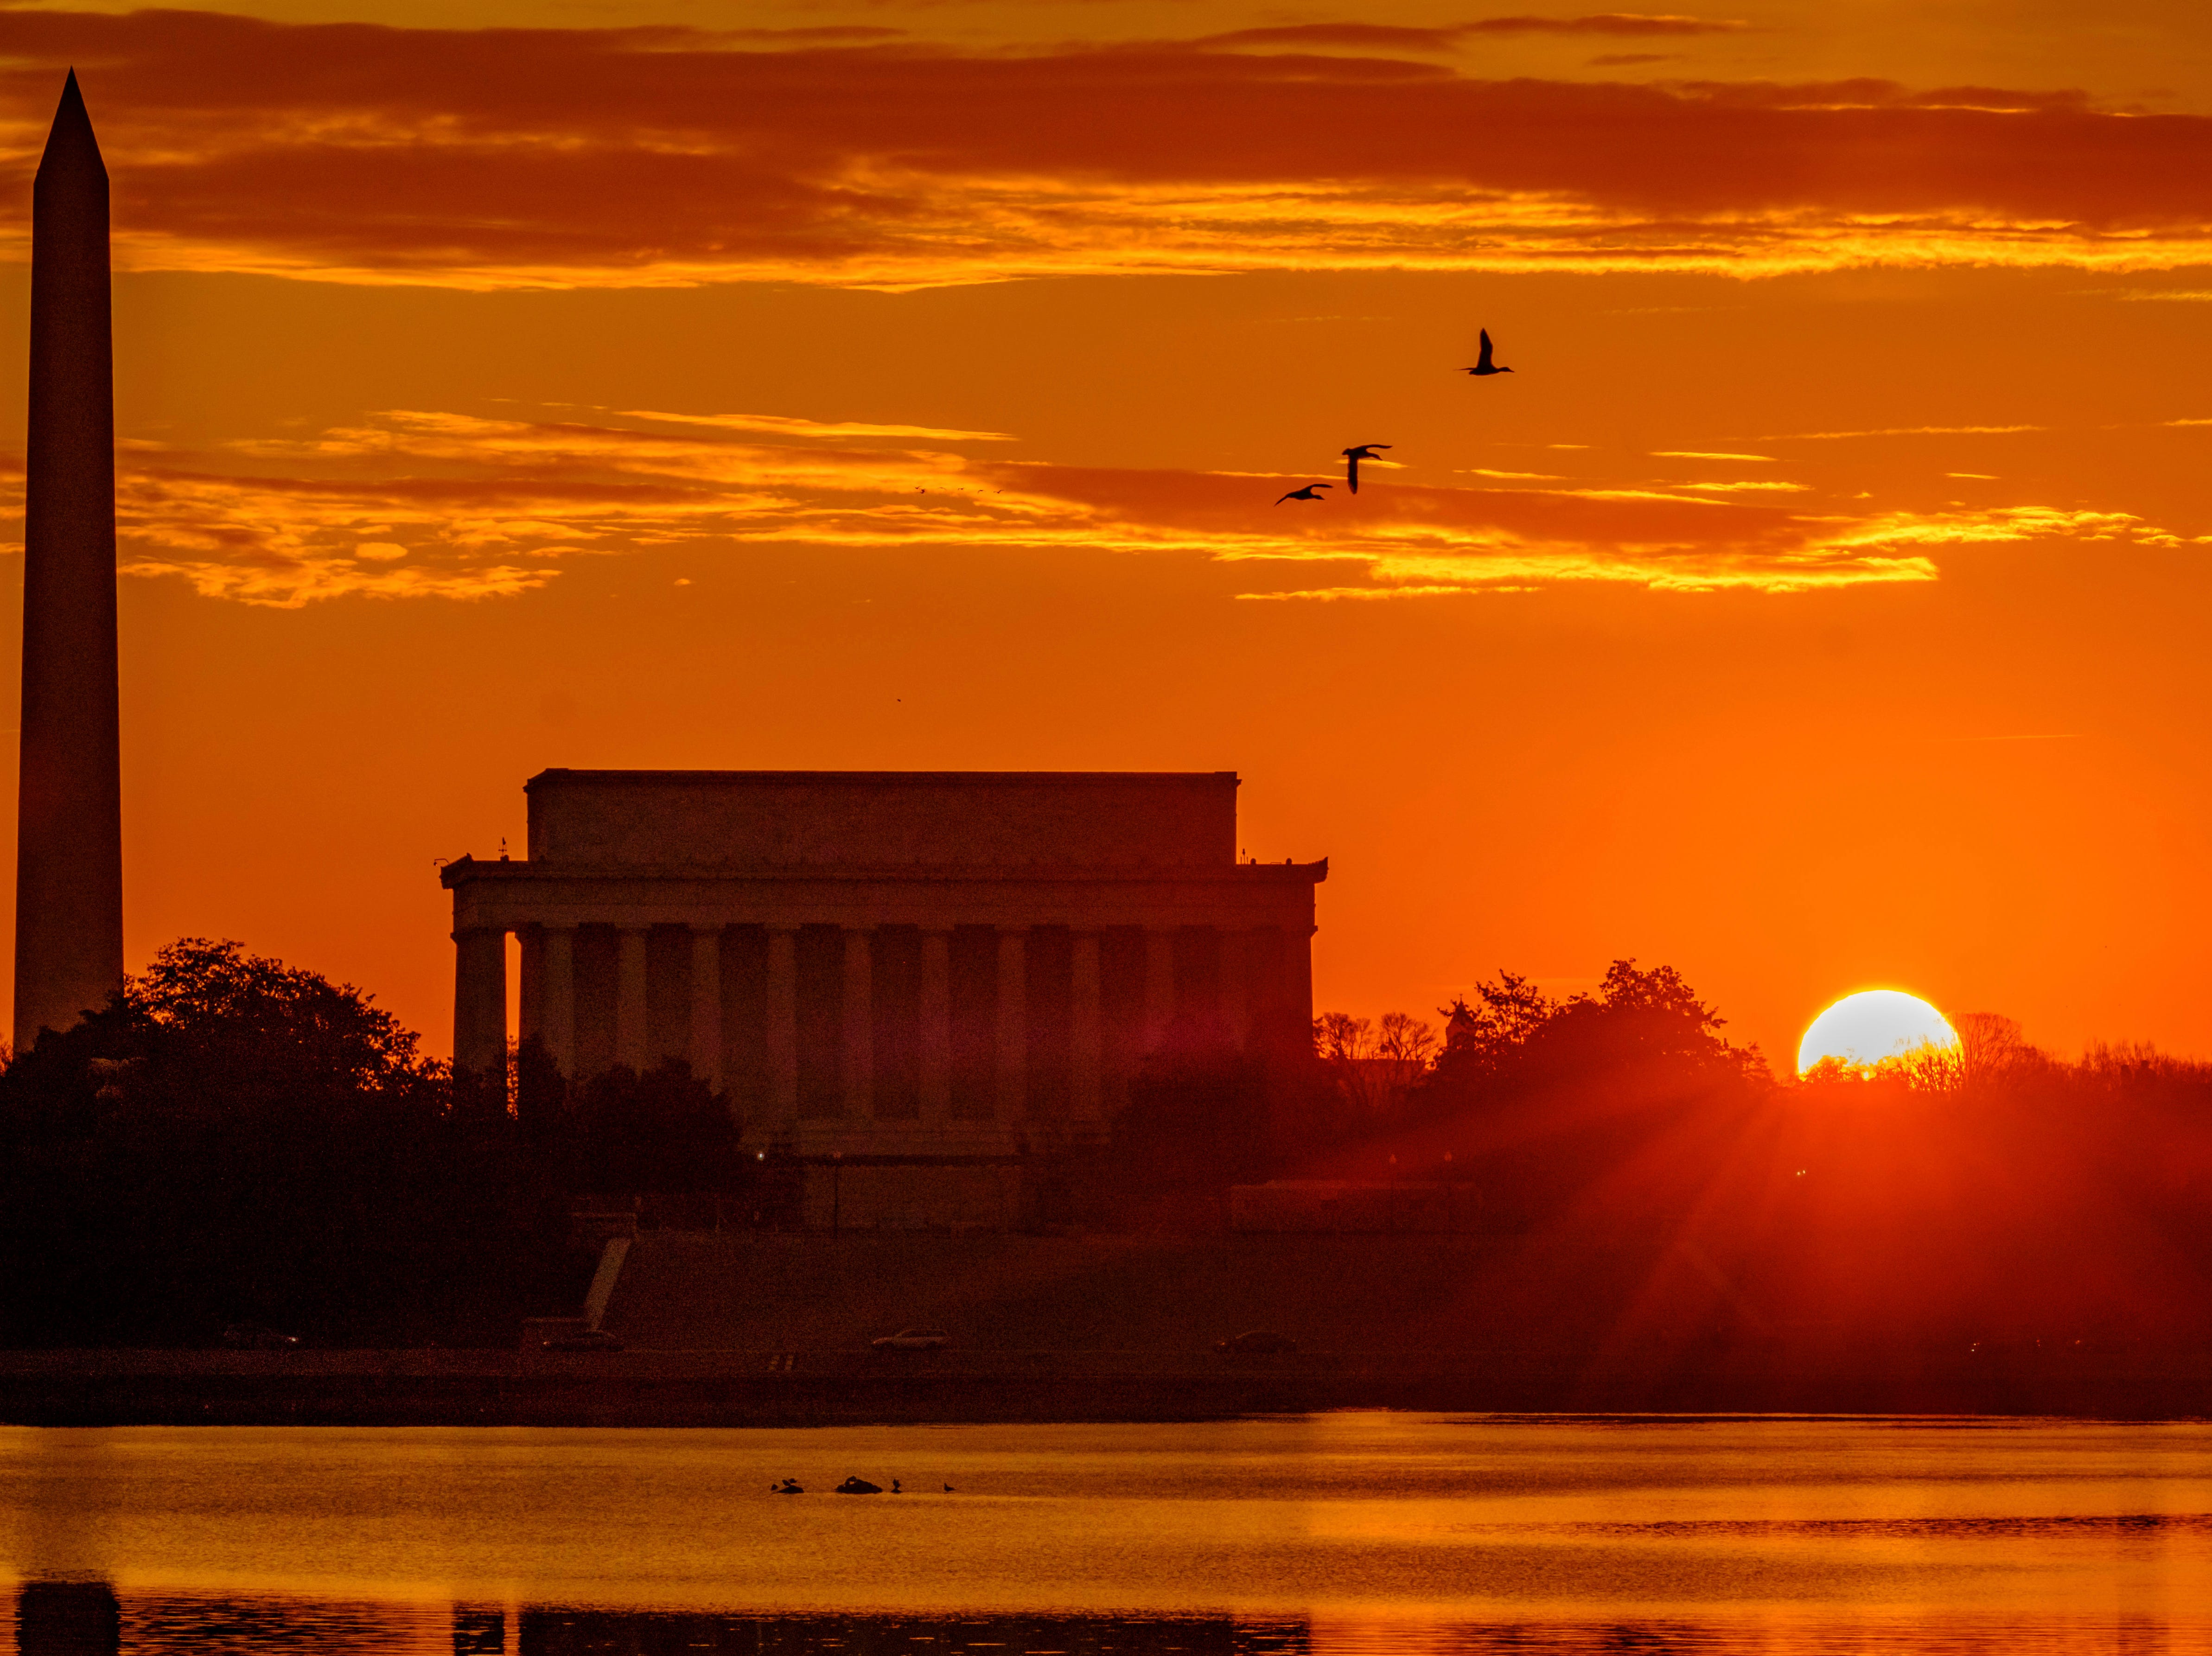 March 6, 2018: The sun peaks over the horizon next to the Washington Monument and Lincoln Memorial at daybreak along the Potomac River in Washington.